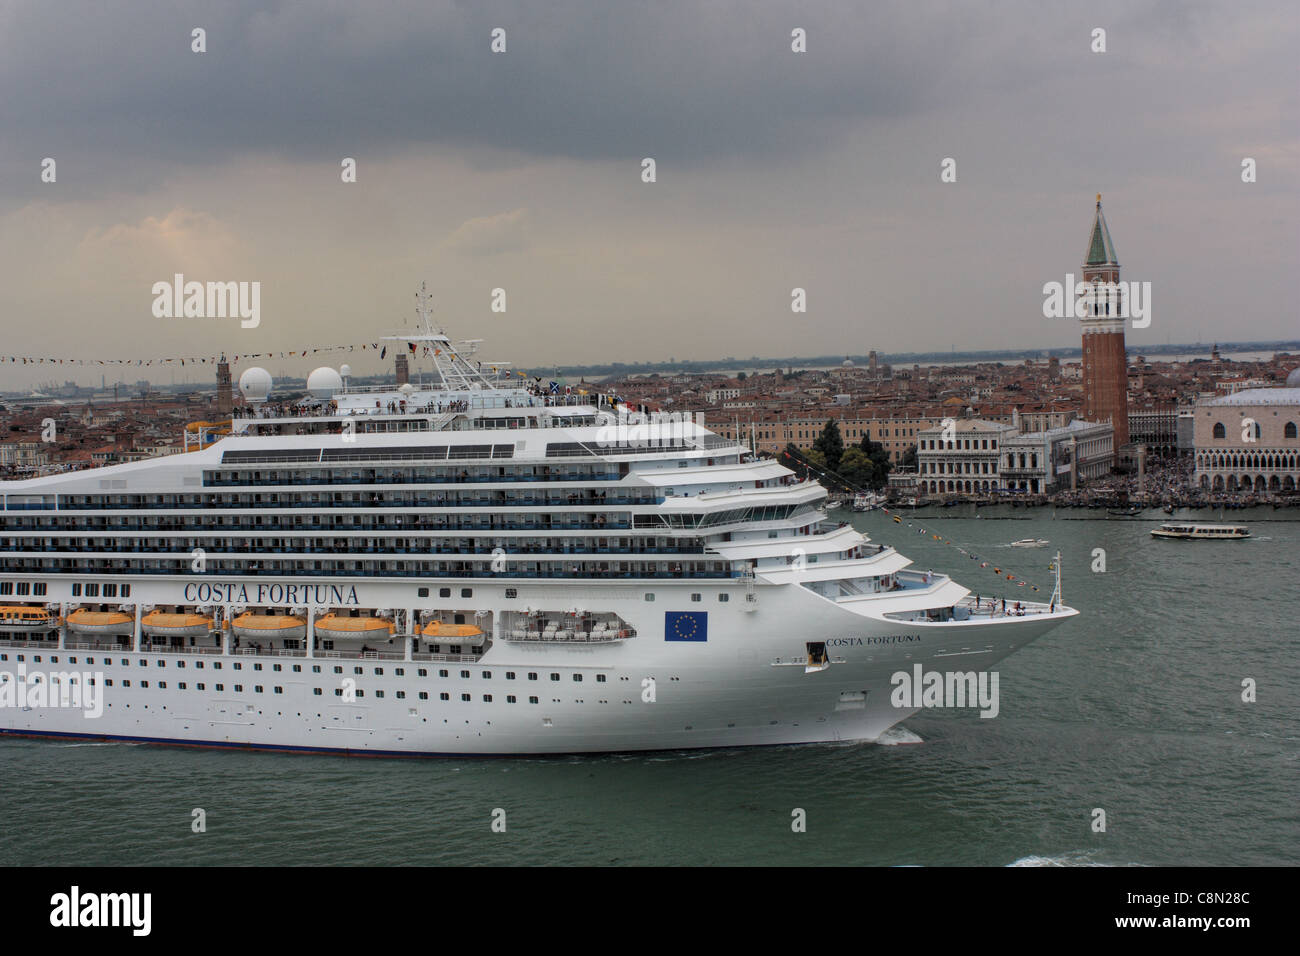 Cruise ship Costa Fortuna - Stock Image